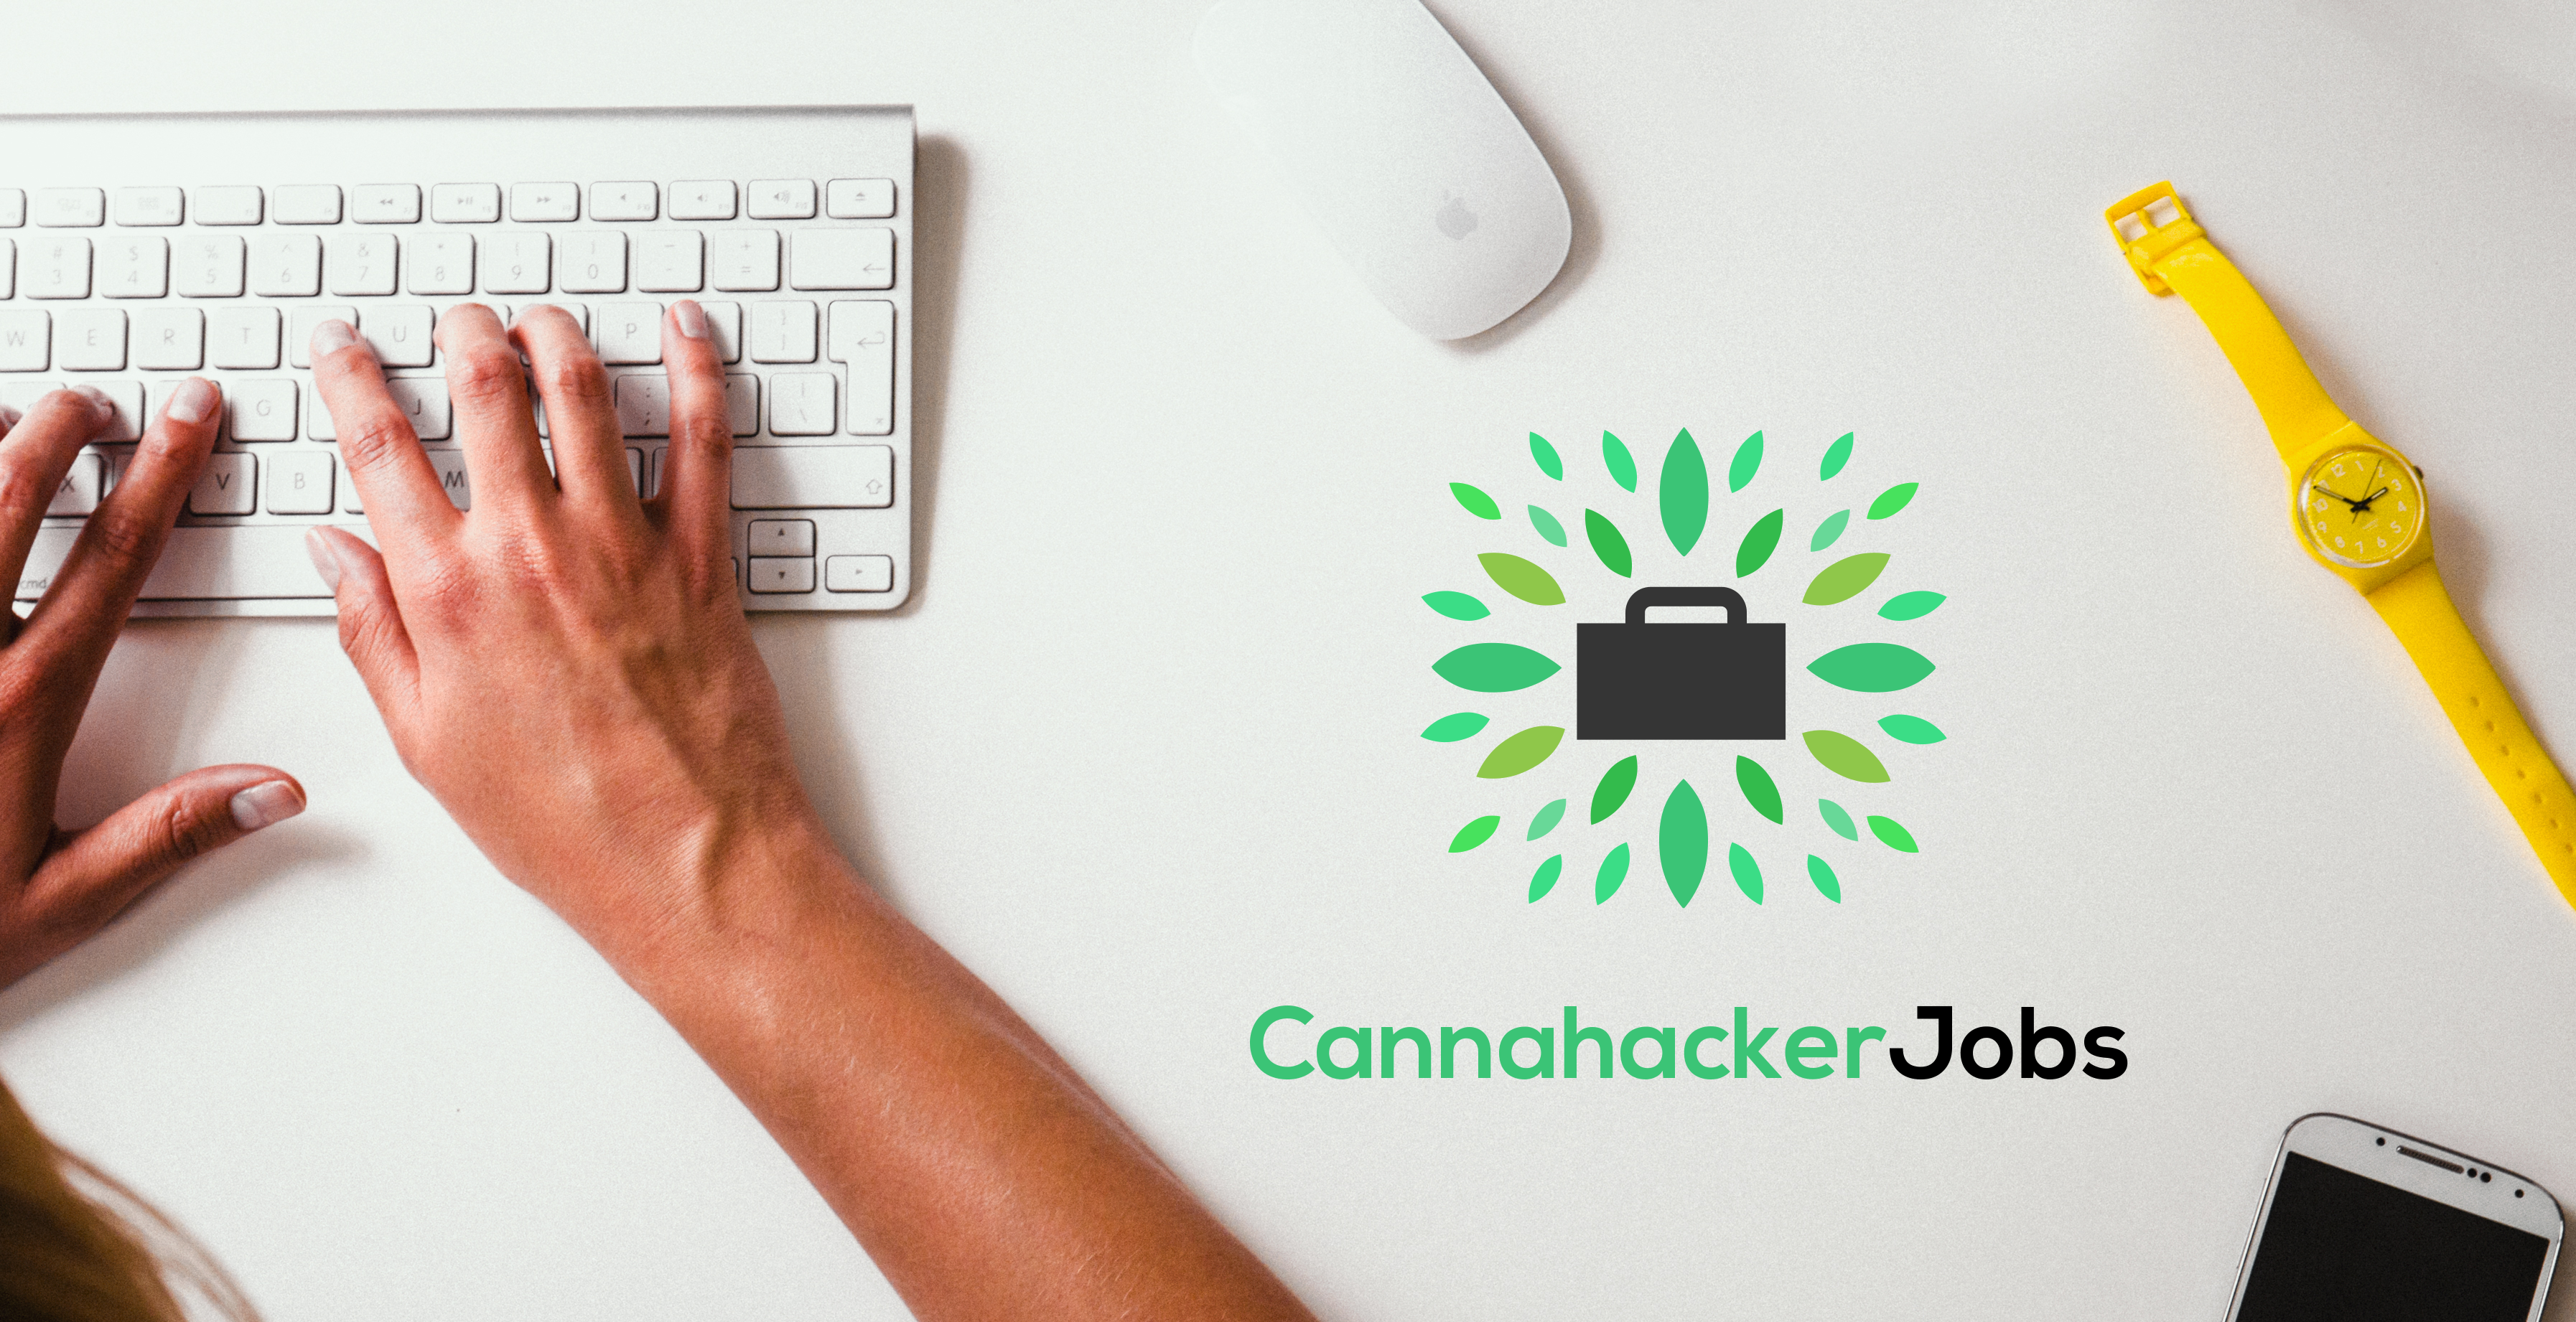 Cannahacker Jobs is kicking off, sign up here.